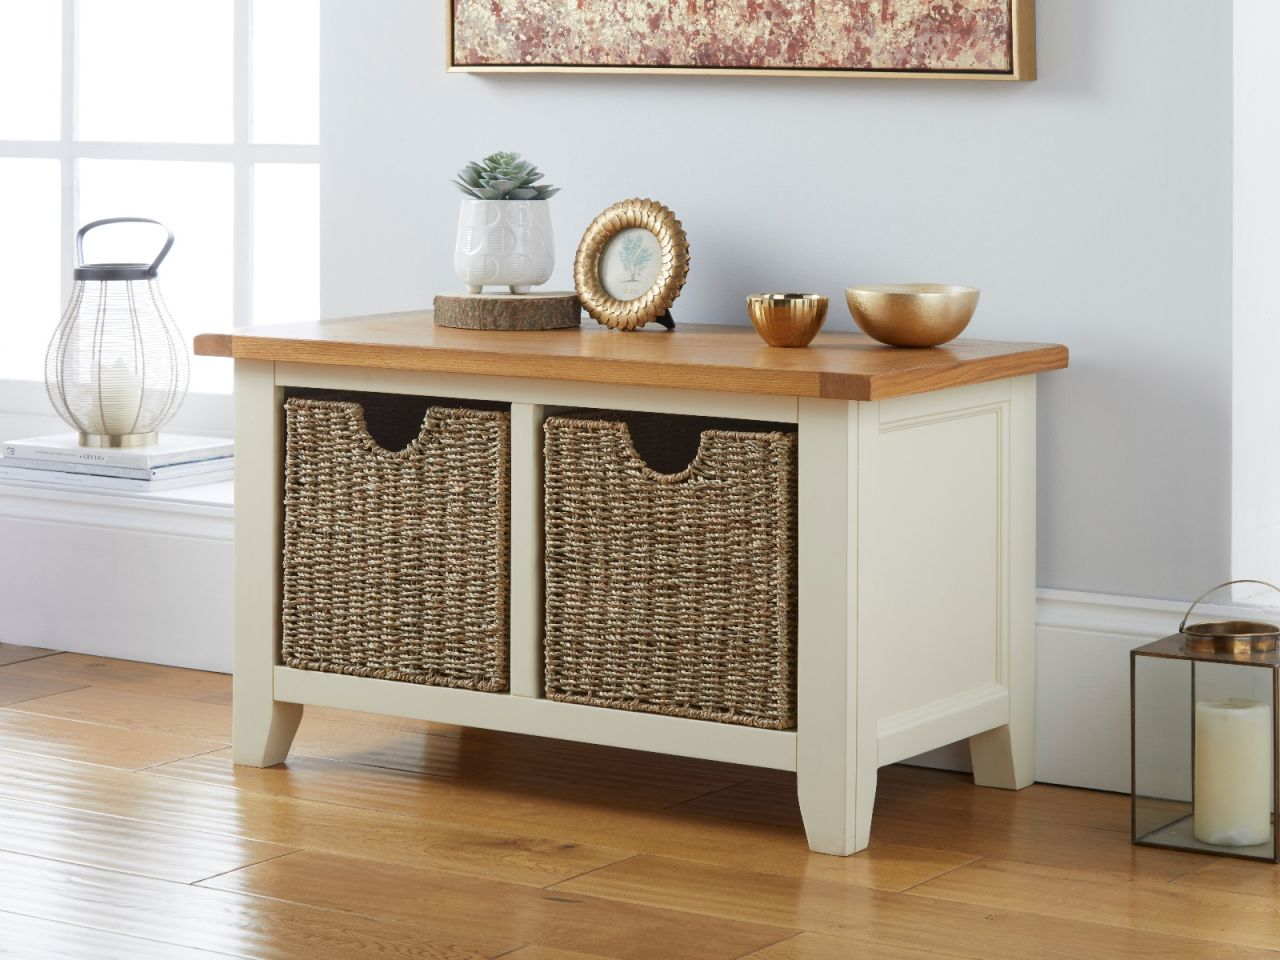 Cream Painted Oak Hallway Shoe Storage Bench With 2 Baskets Free Delivery Top Furniture